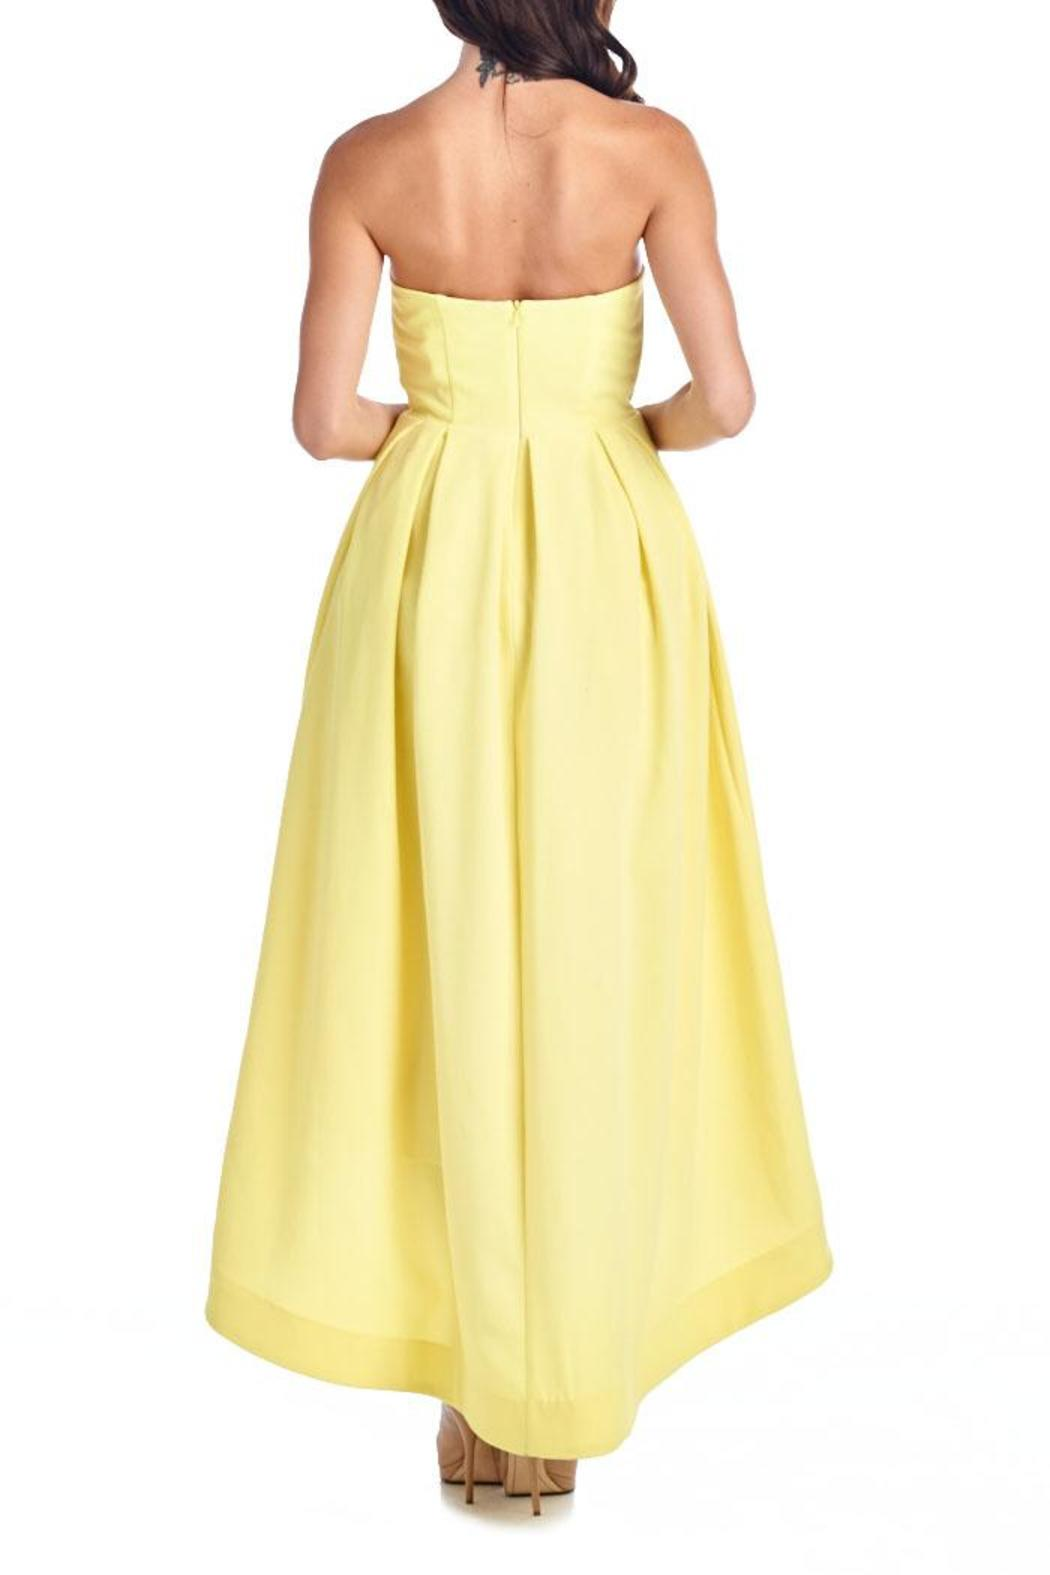 Rubber Ducky Belle Dress From Nevada By Pink Society